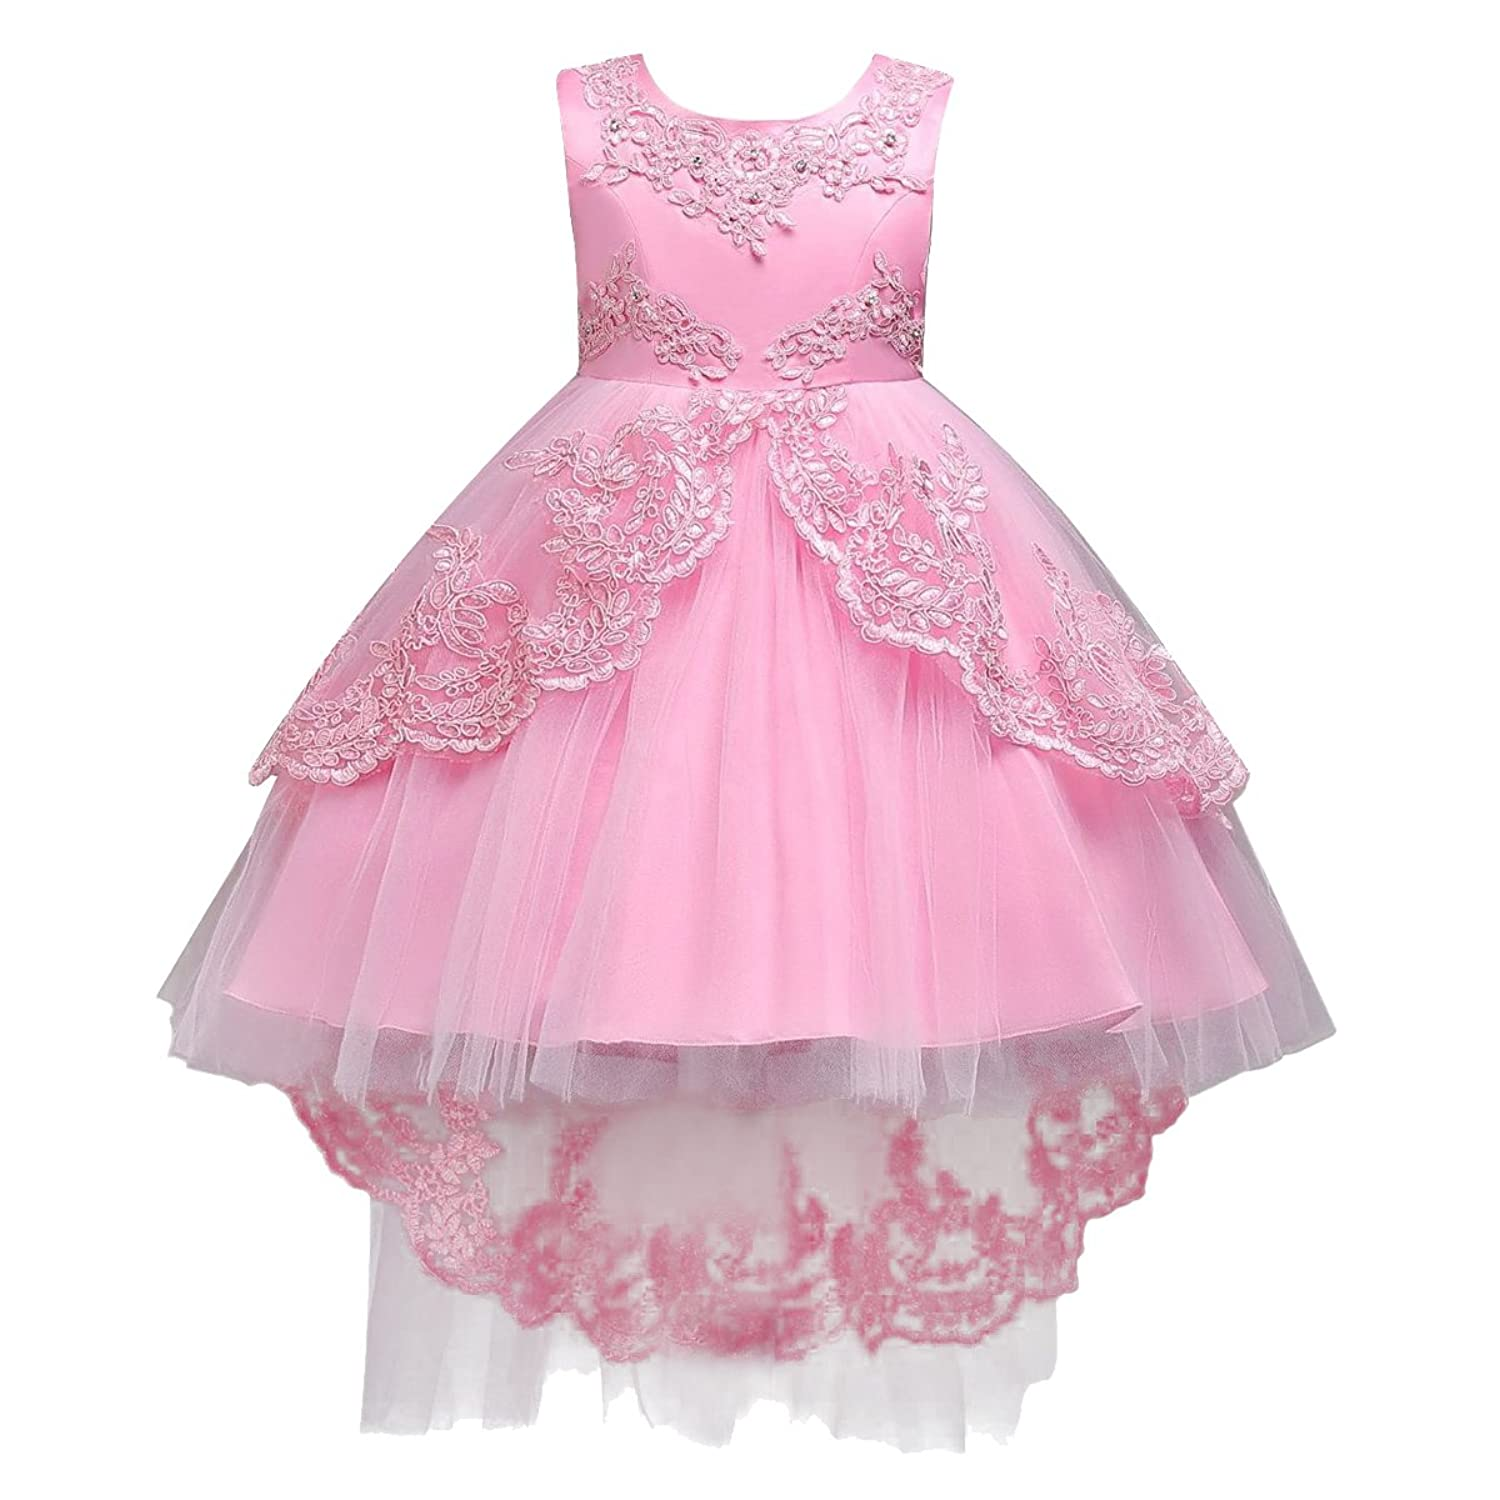 Weddings & Events Flower Girl Dresses Beautiful Children Chiffon Sleeveless Flower Girls Dresses Round Neck High-low Kids Casual Daily Holiday Party Beach Parties Dress